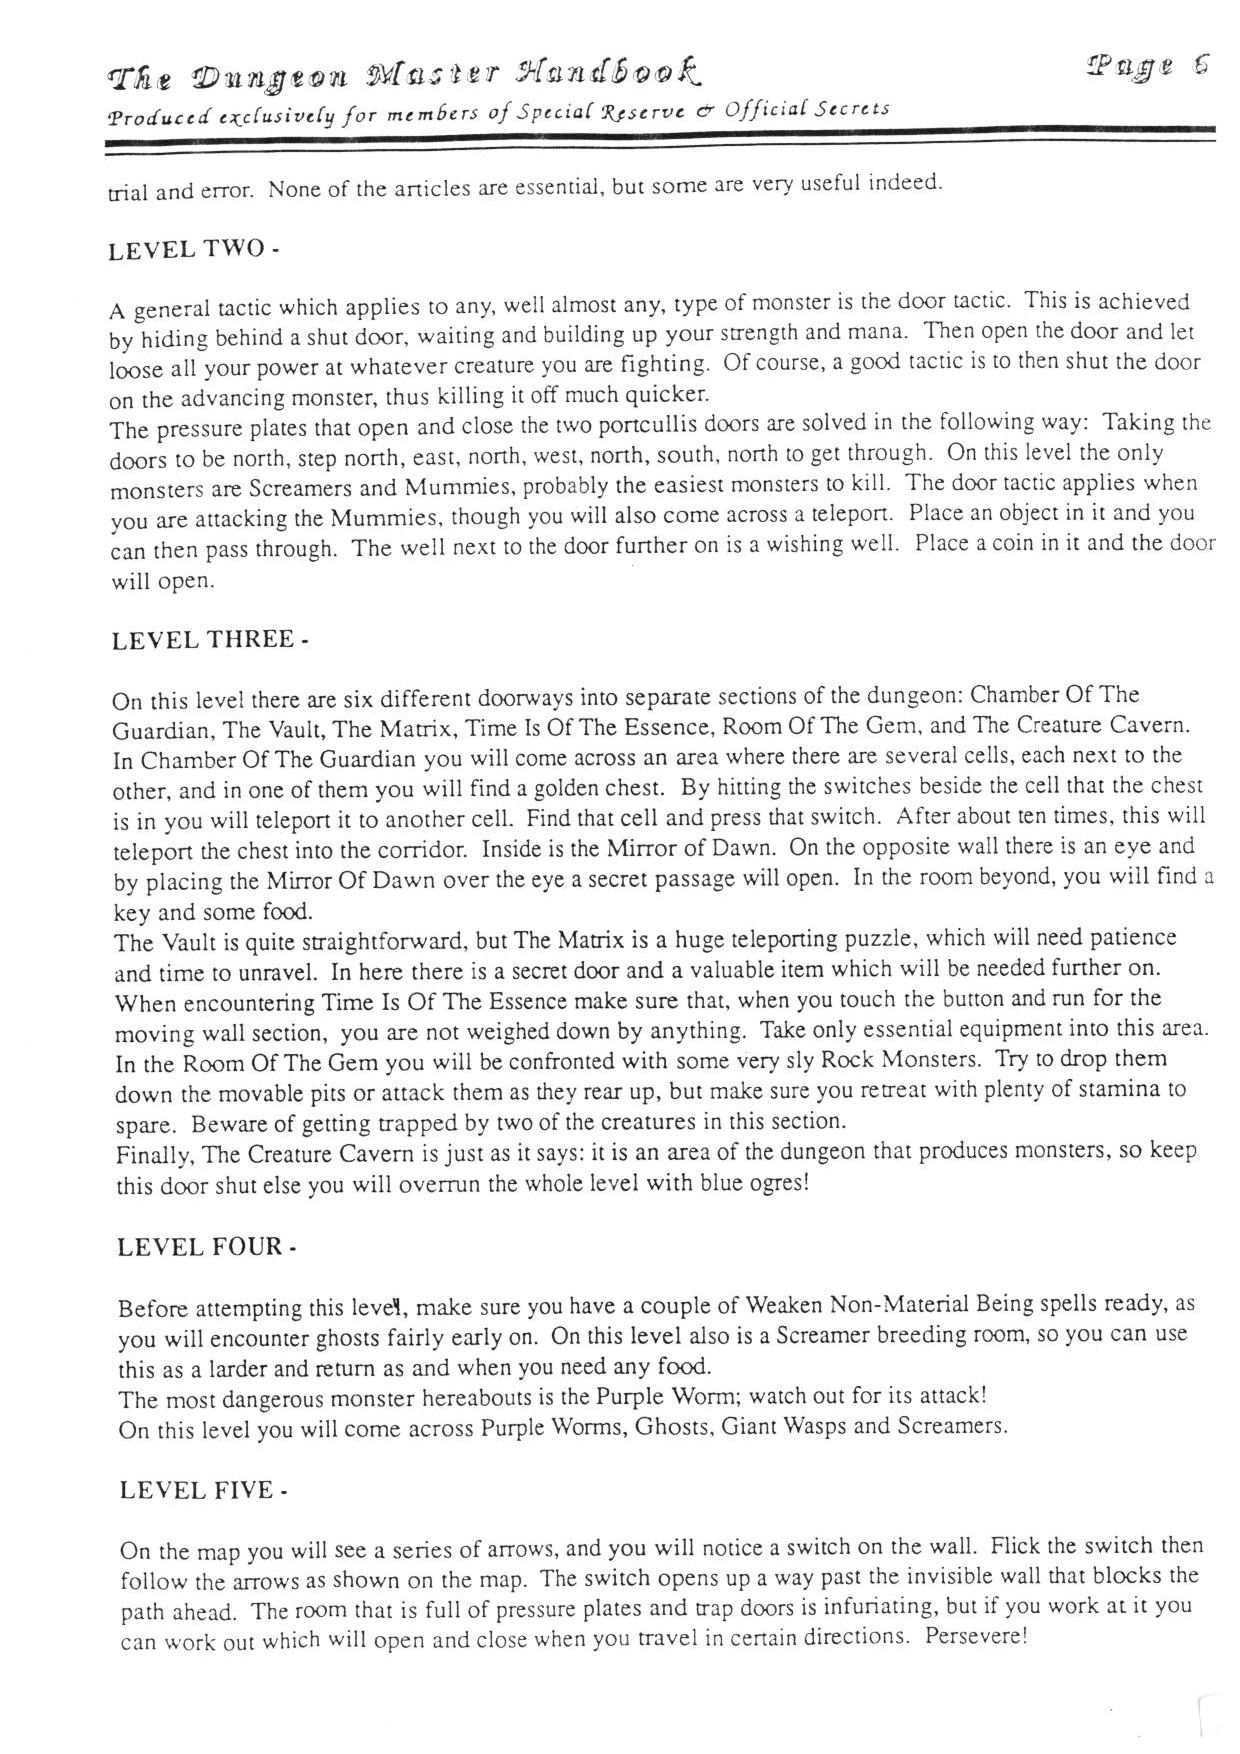 Hint Book - The Dungeon Master HandBook - UK - Page 007 - Scan